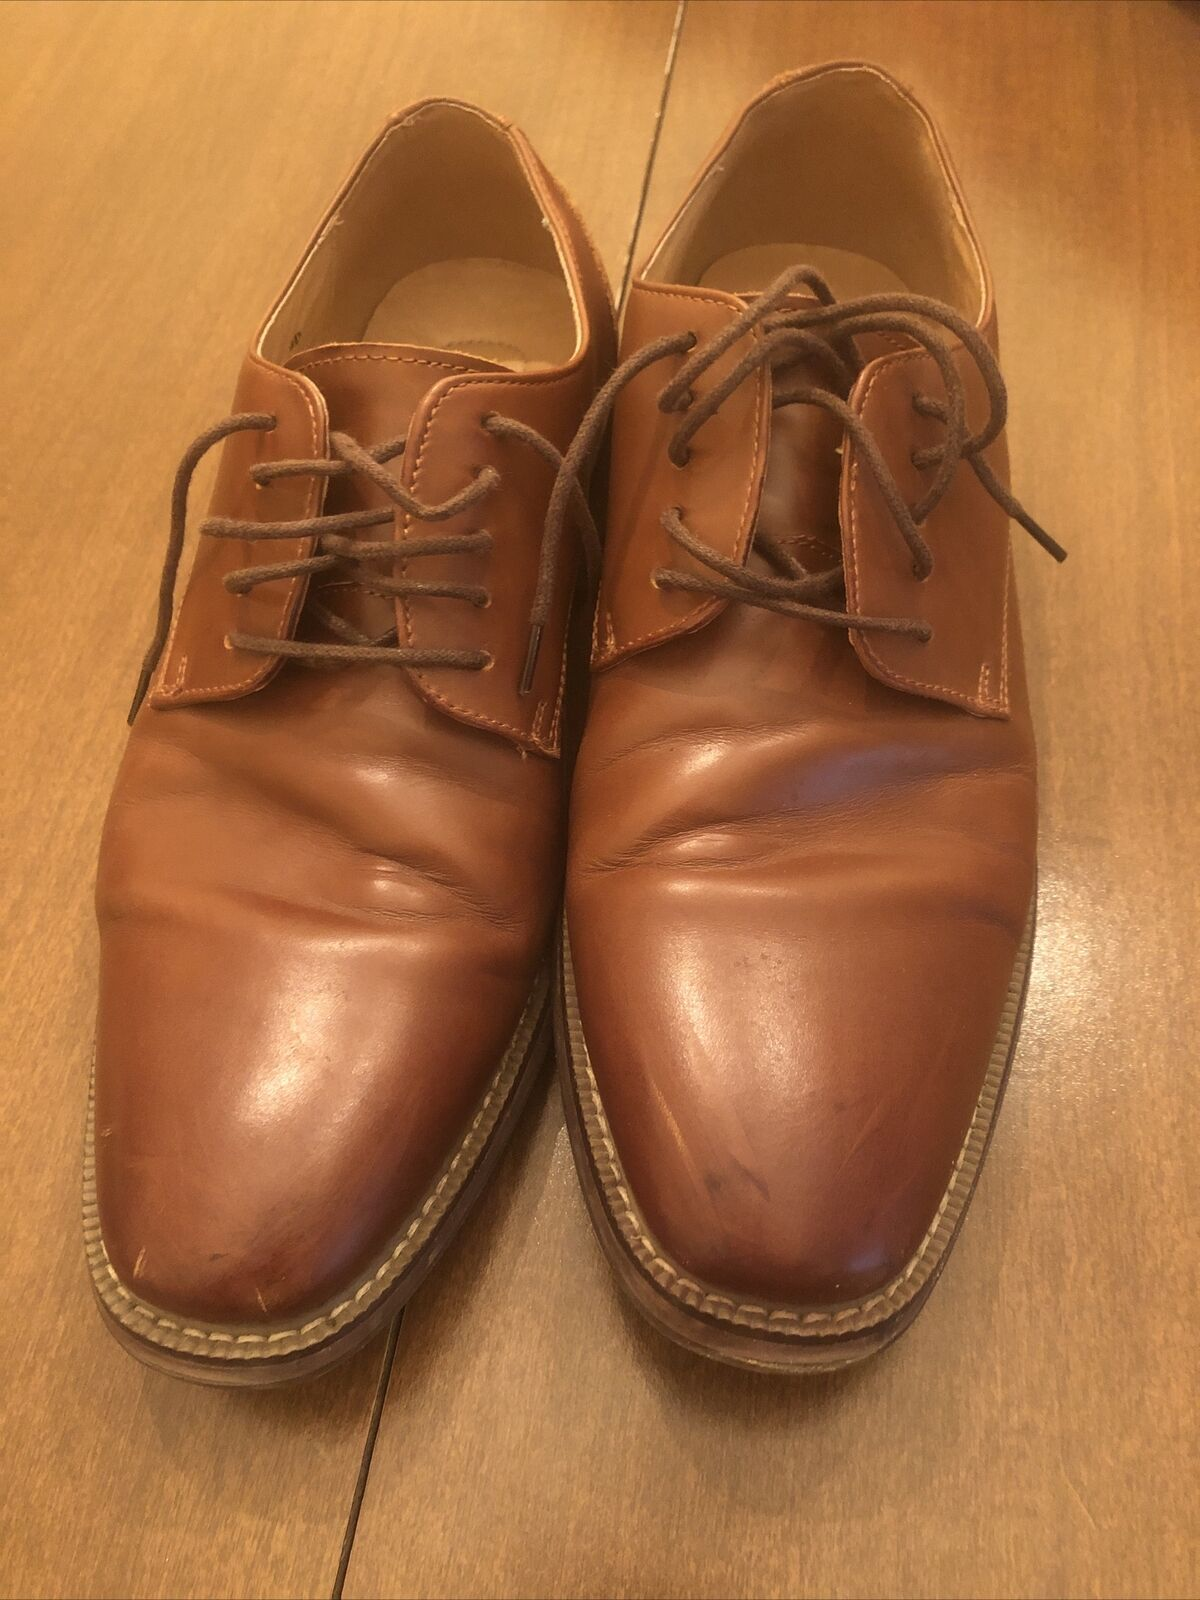 Joseph Abboud Mens 10 Dress Shoes Brown Lace Up Low Top Square Toe Leather